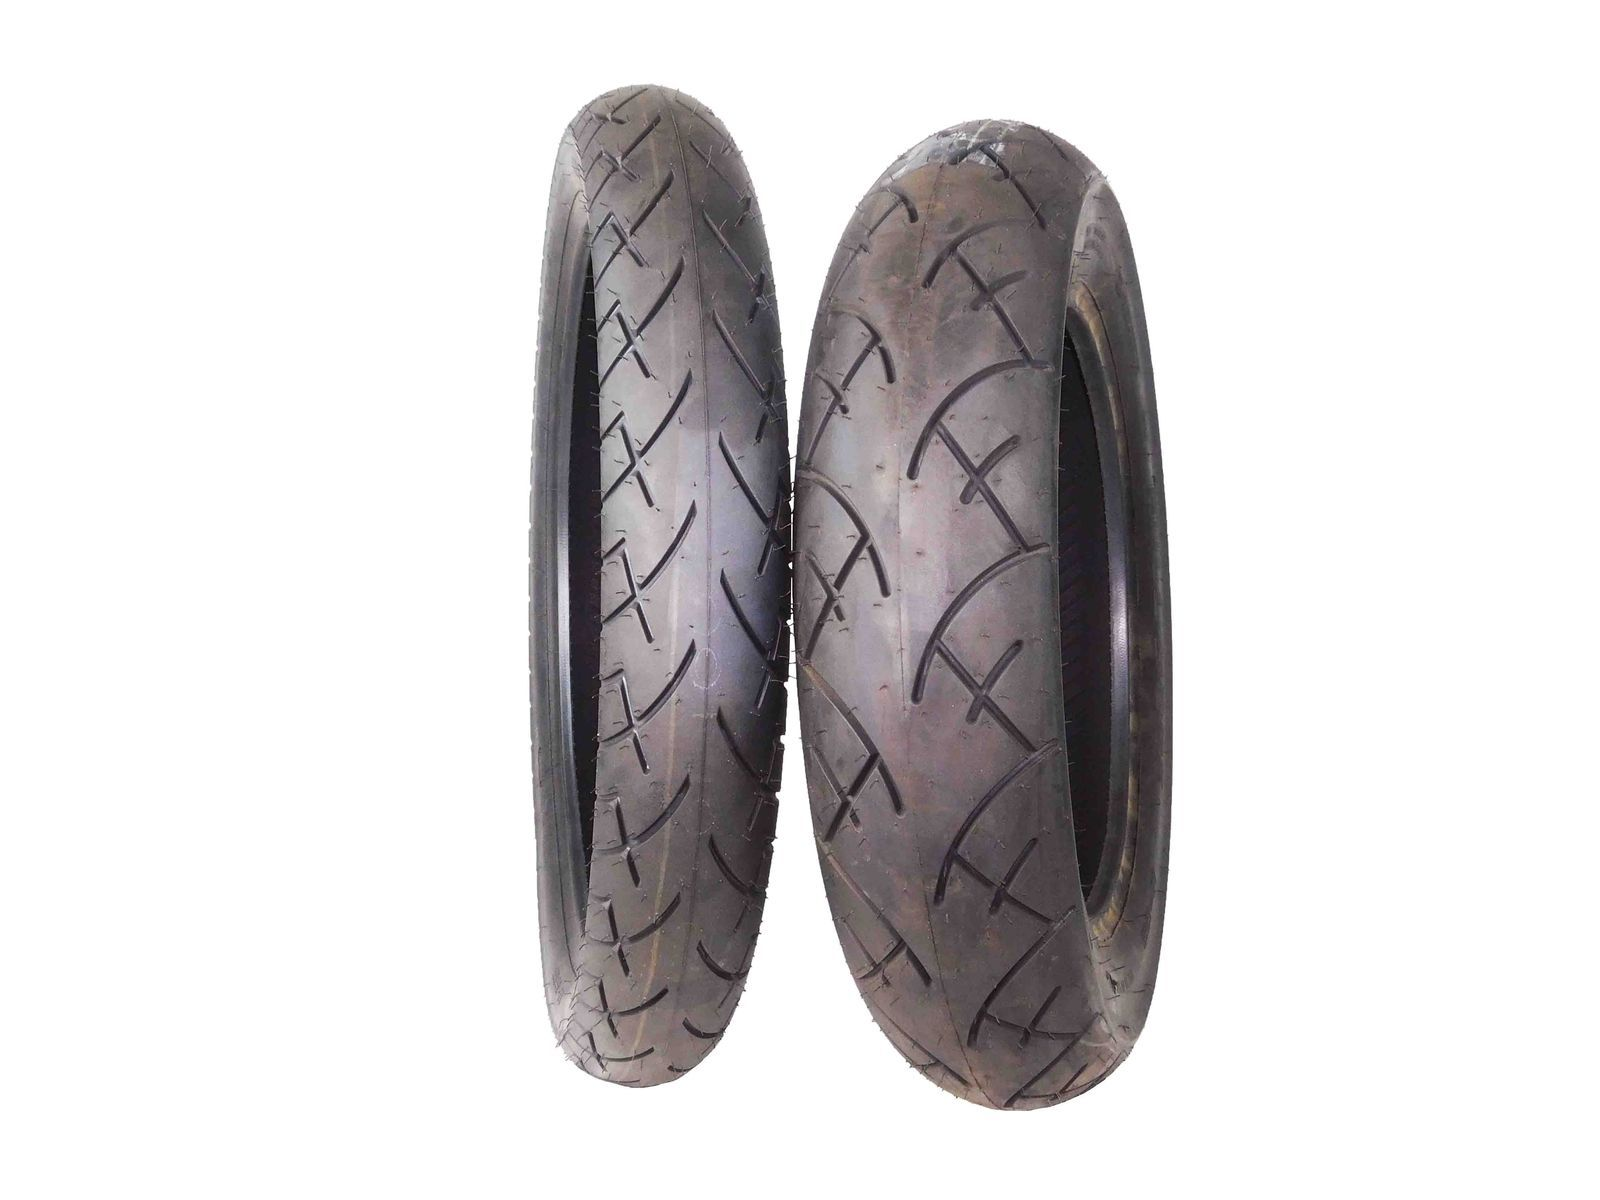 Full-Bore-100-90-19-Front-140-90-15-Rear-Set-Cruiser-Motorcycle-Tires-image-1